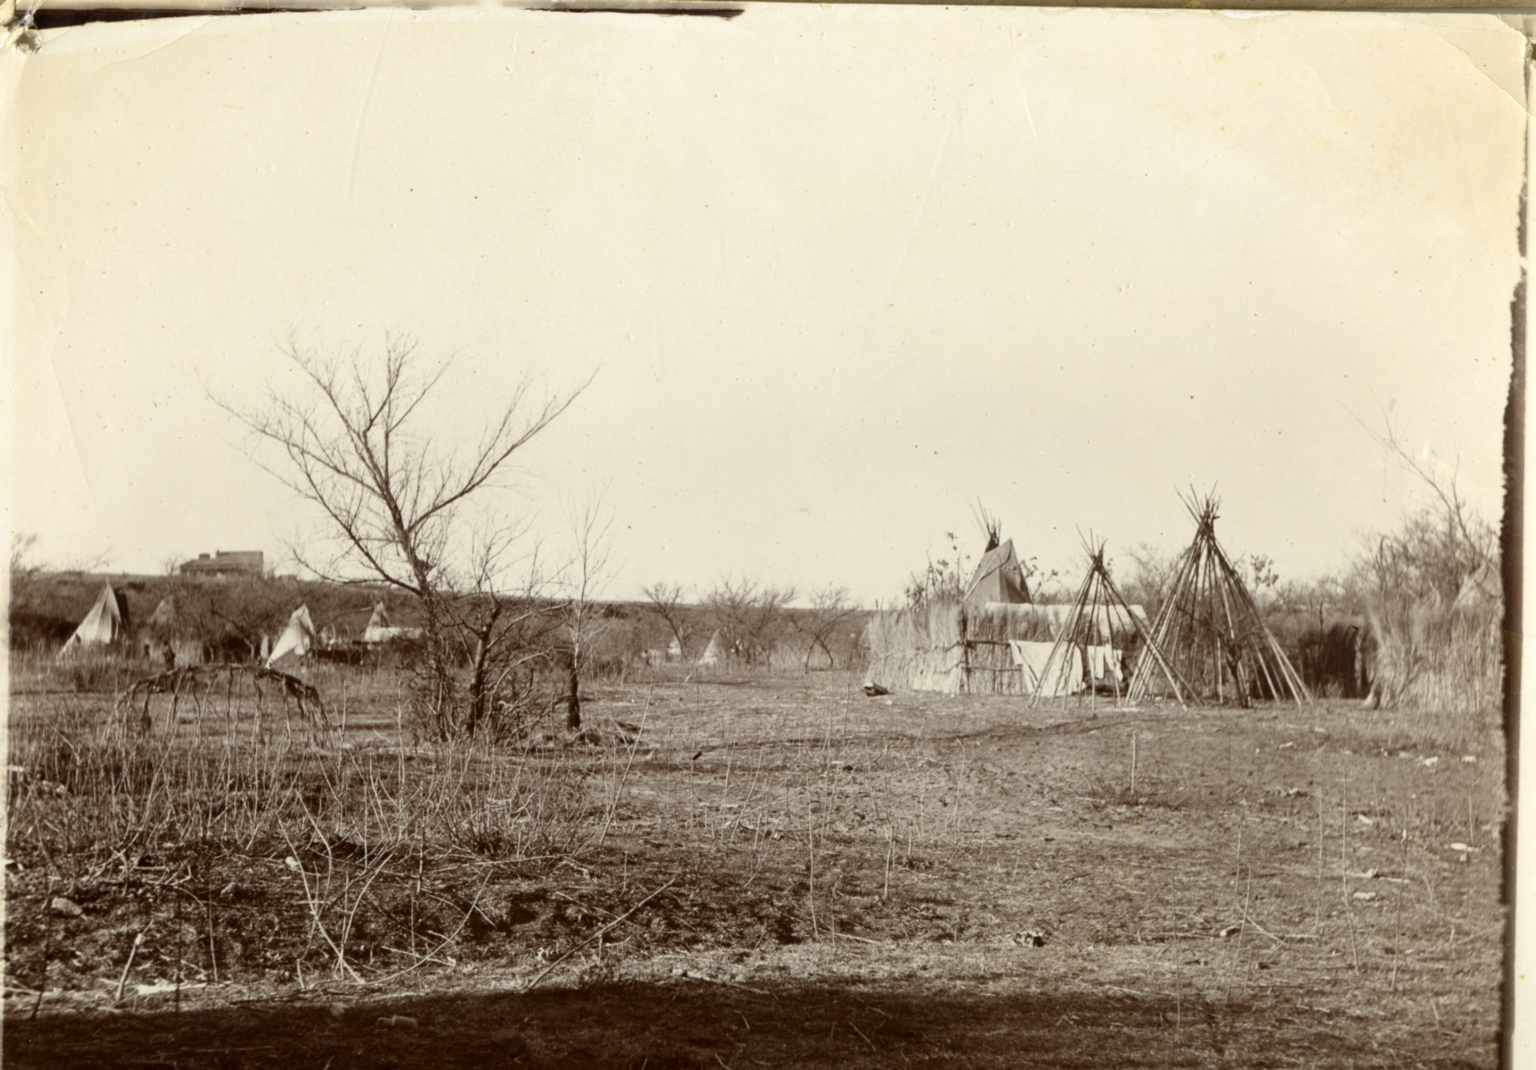 Cheyenne camp